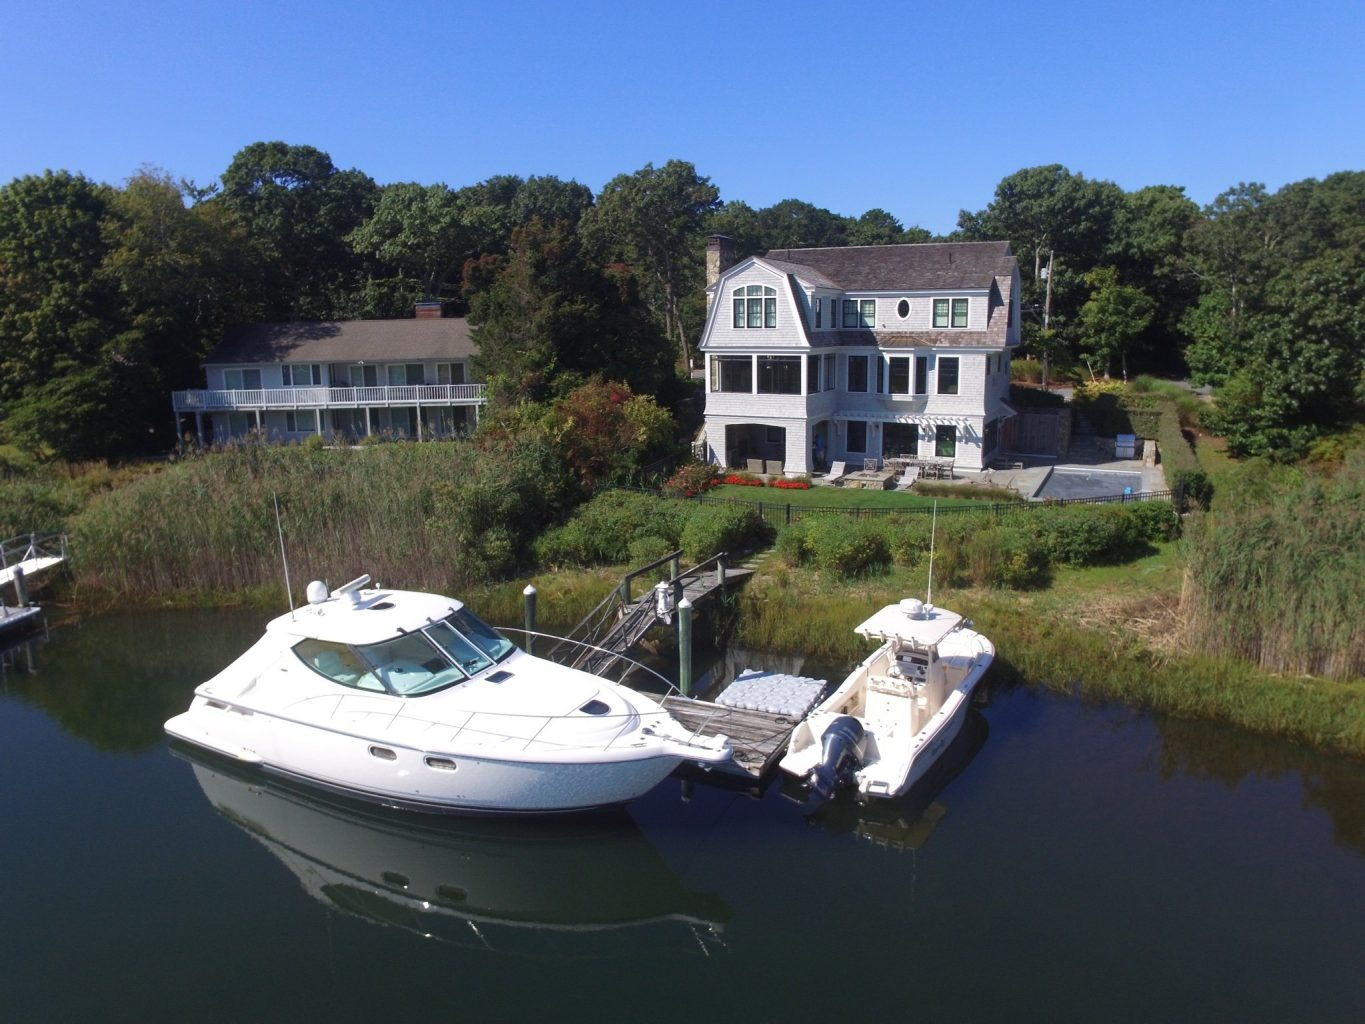 A beautiful three story waterfront home with dock and two boats